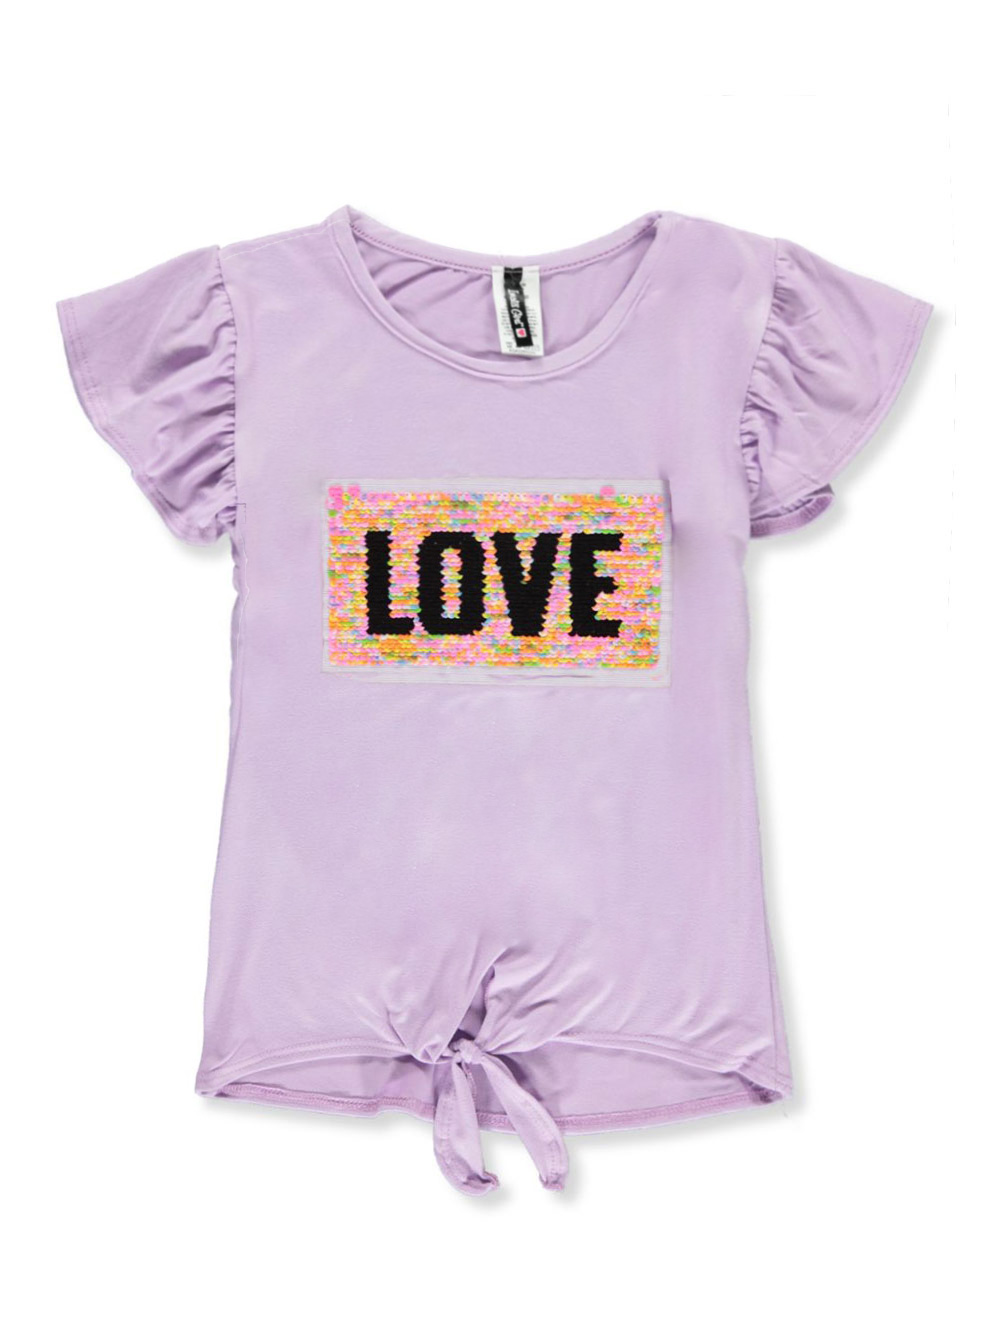 Size 7 Fashion Tops for Girls